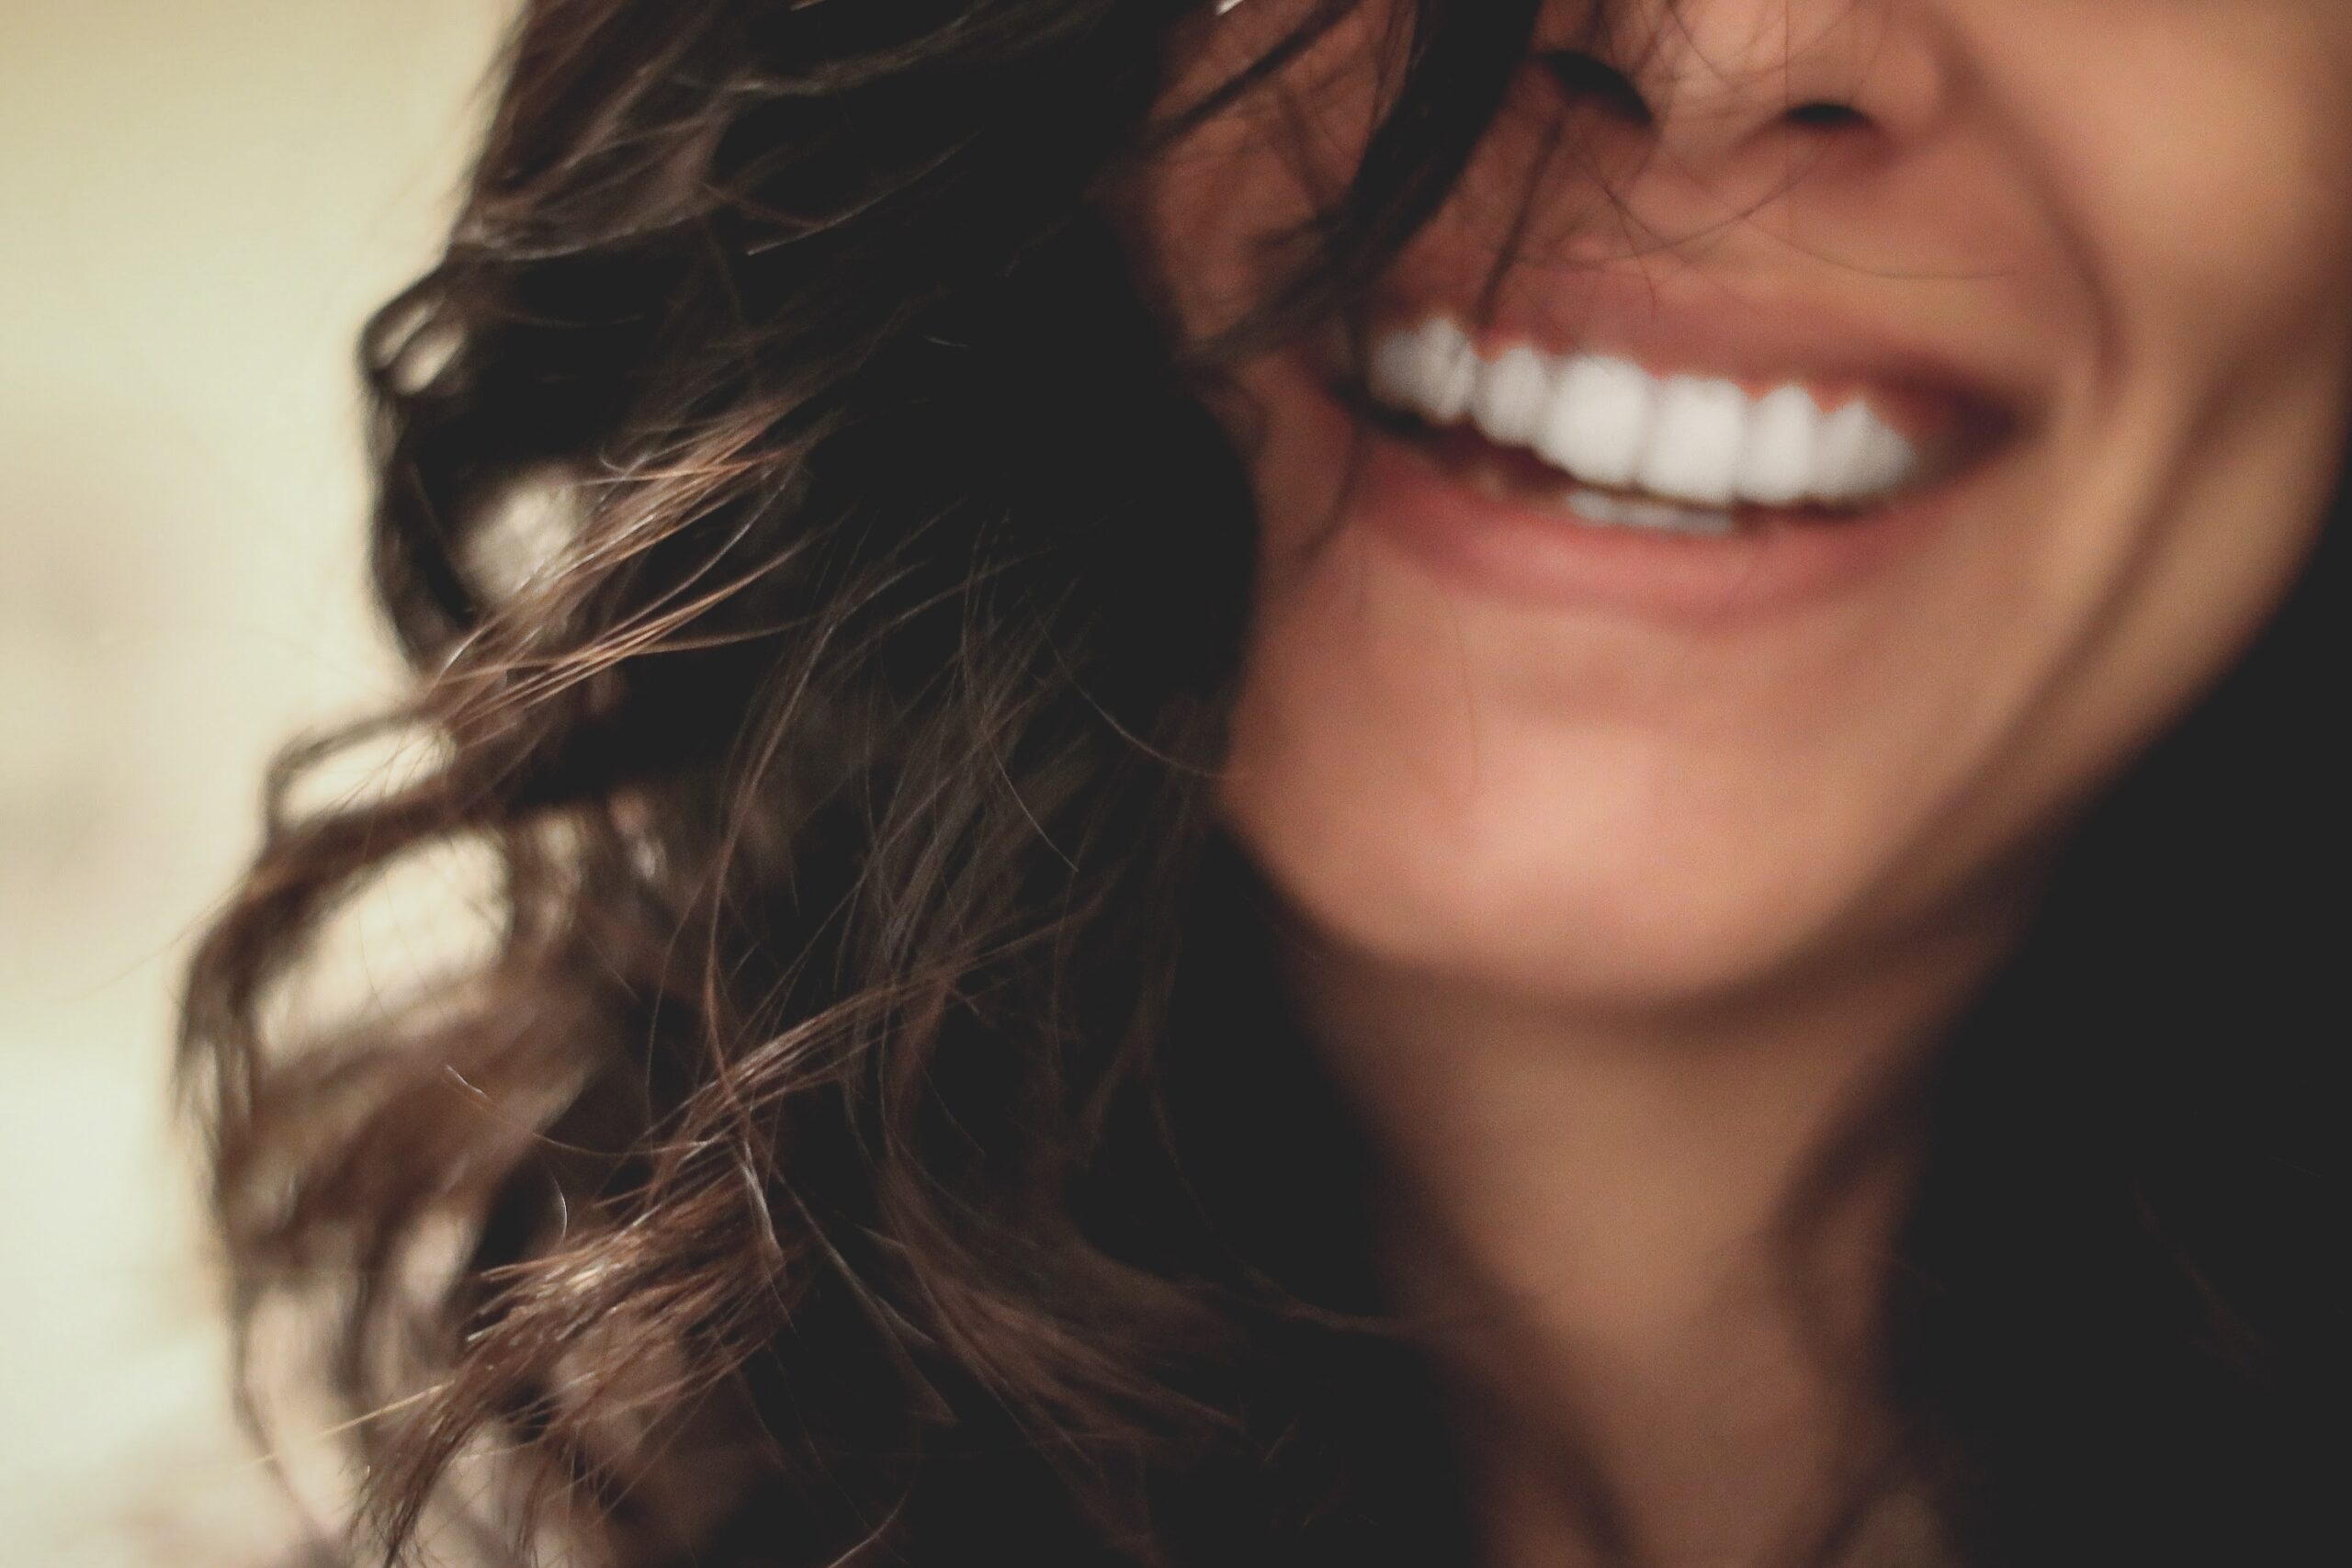 Laugh a lot for good wellbeing (A complete guide)